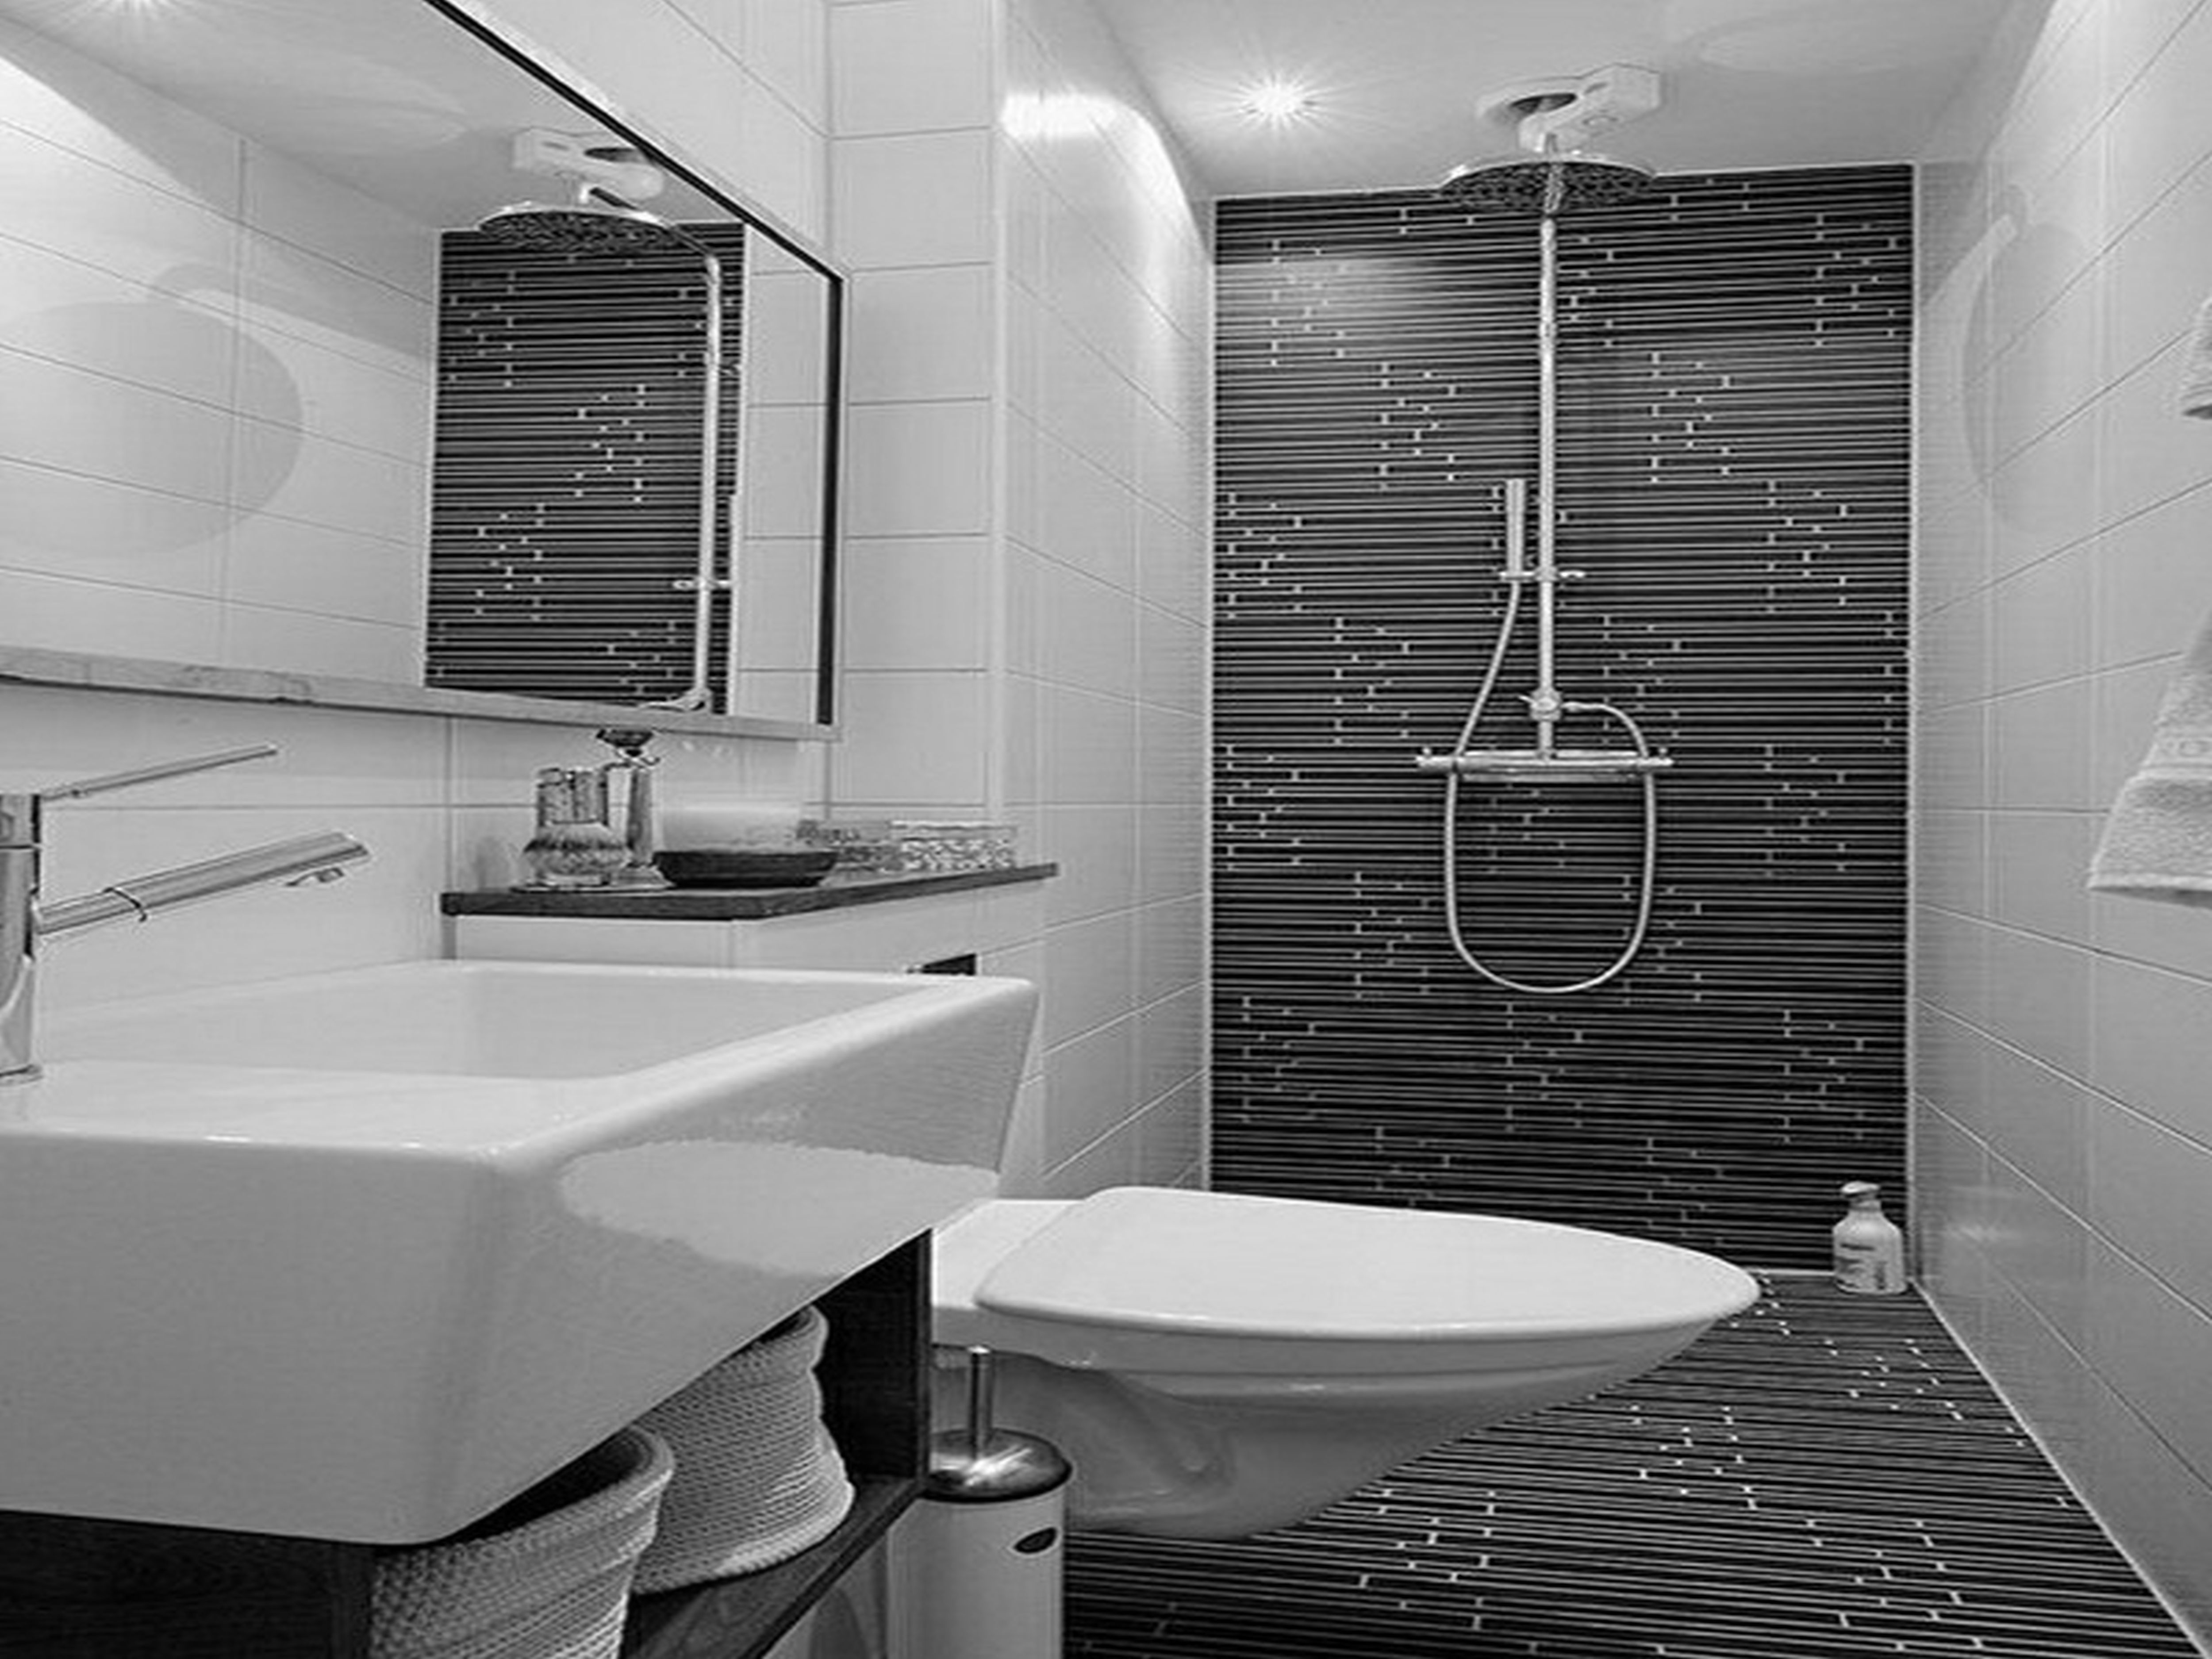 inspiration-bathroom-eye-catching-chrome-free-standing-head-shower-double-handle-attach-gray-subway-graphic-ceramic-panels-as-well-as-white-floating-rectangular-porcelain-sink-with-wall-mount-bath-mi